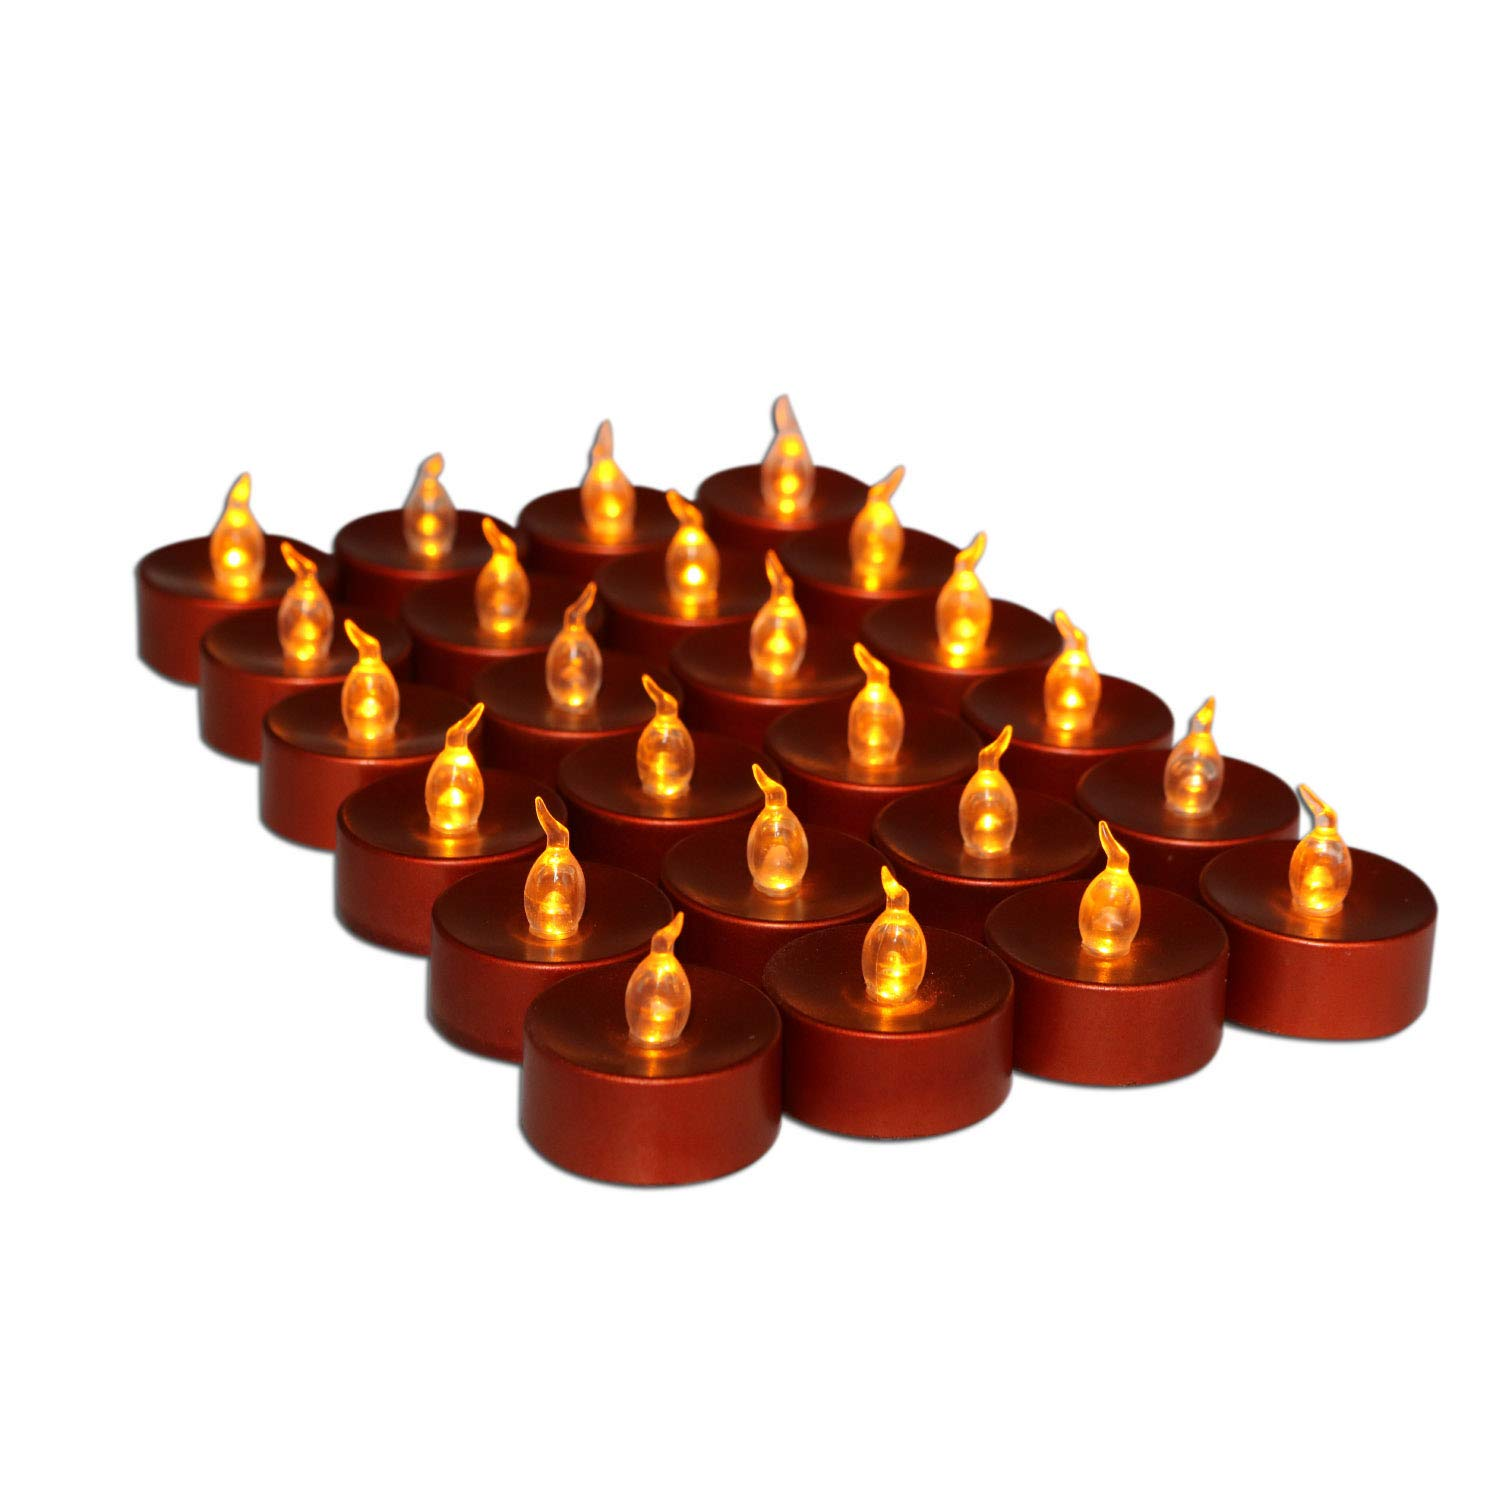 Xinind Brown Bottom Yellow Flickering Tea Light Candles 24PCS Flameless Battery-Powered LED Votive Candles Wedding Party Festival Decoration Tealights